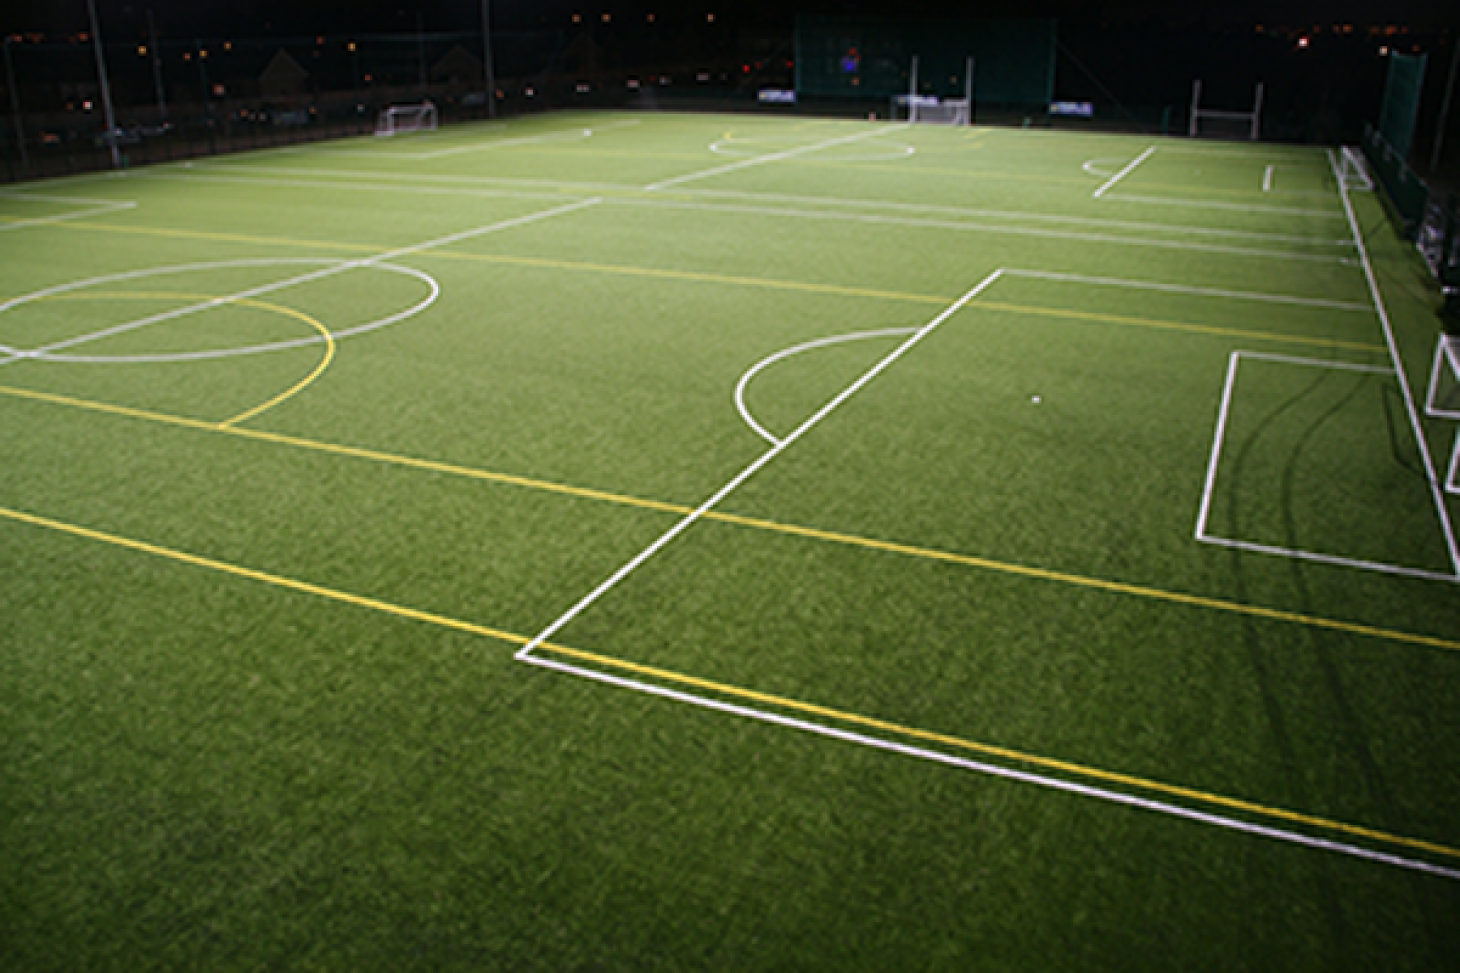 St. Benildus College 5 a side | Astroturf football pitch